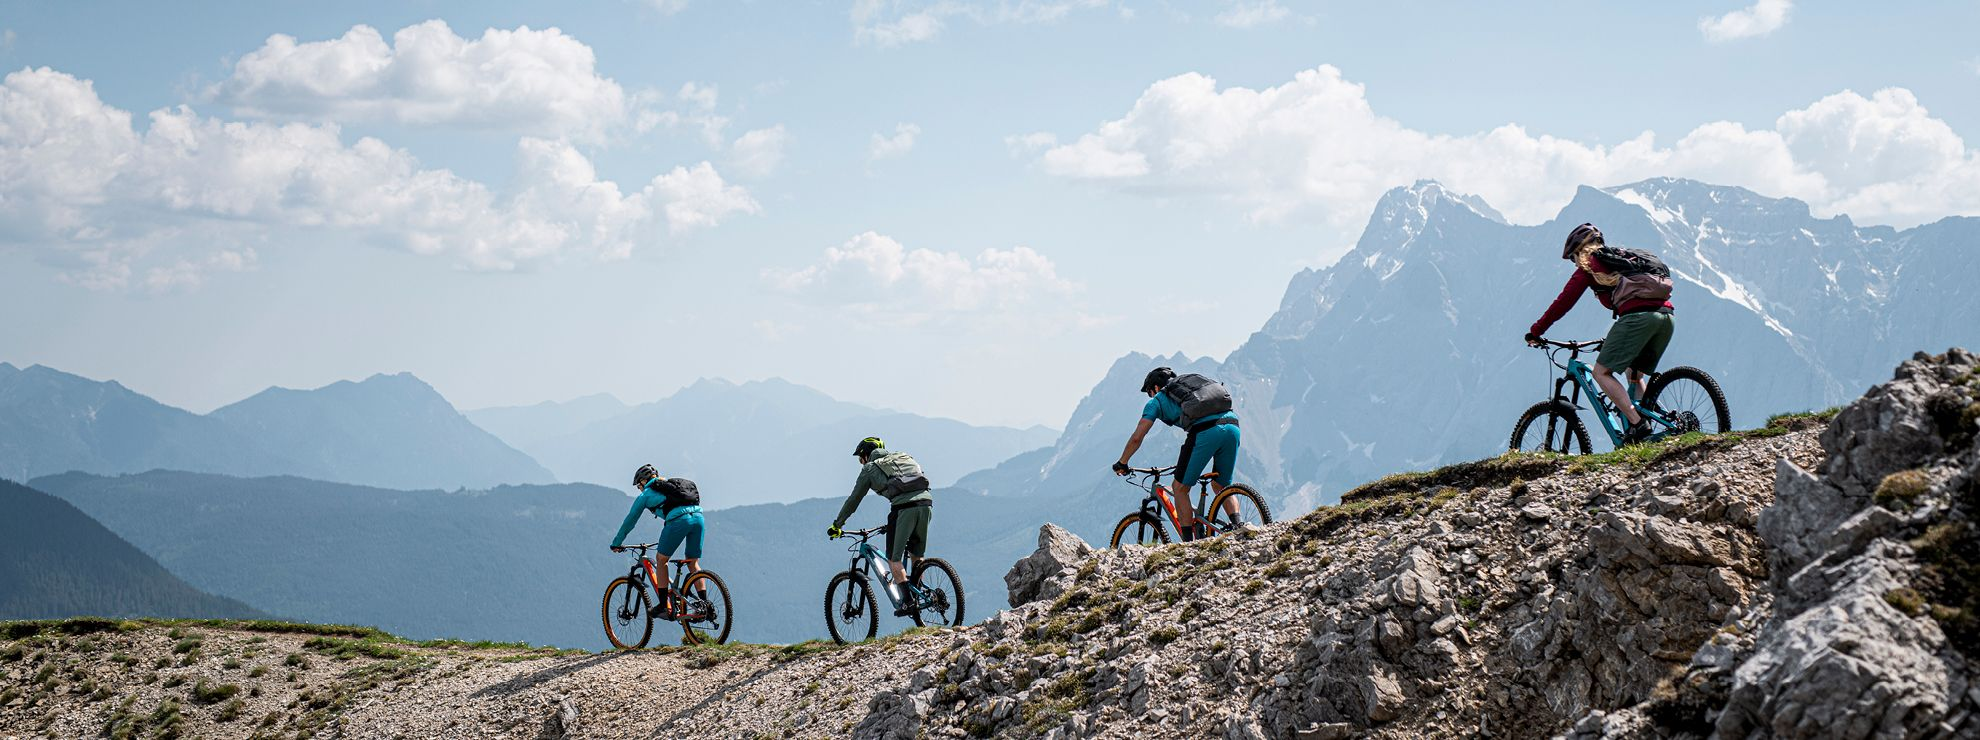 Mountainbike Gloves